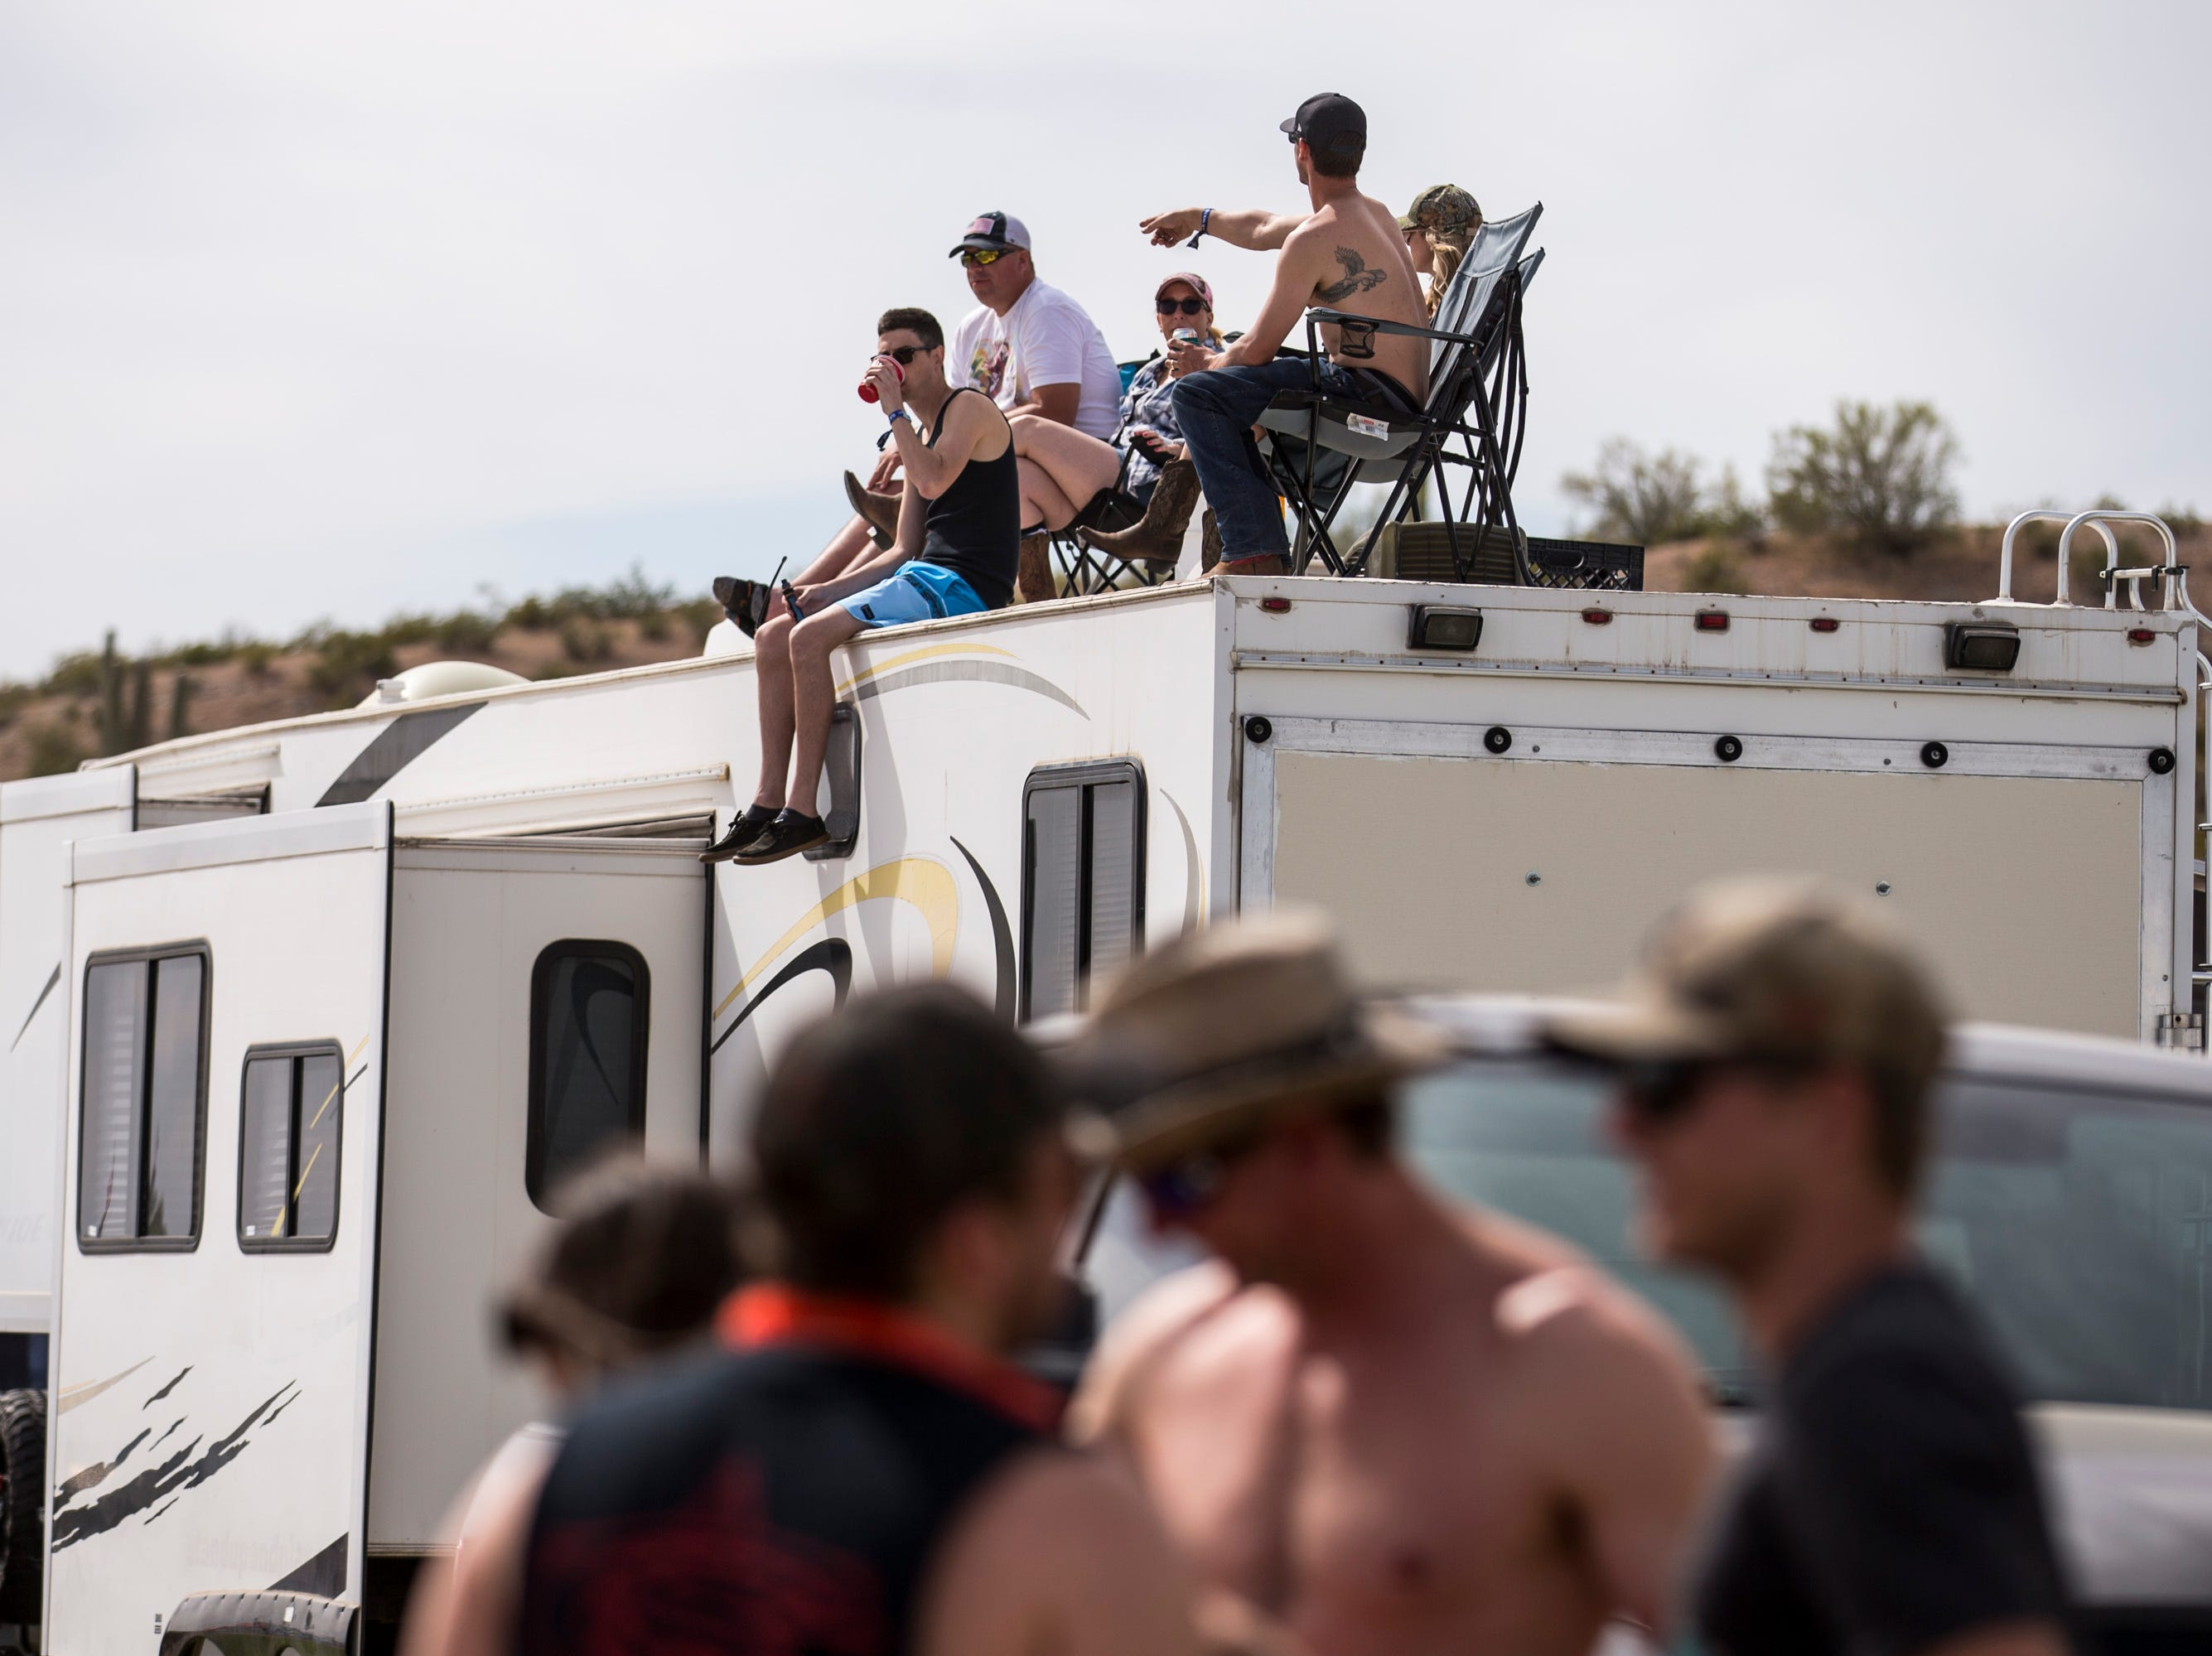 Festival-goers sit on top of an RV at the Crazy Coyote campsite on April 11, 2019, during Day 1 of Country Thunder Arizona in Florence.